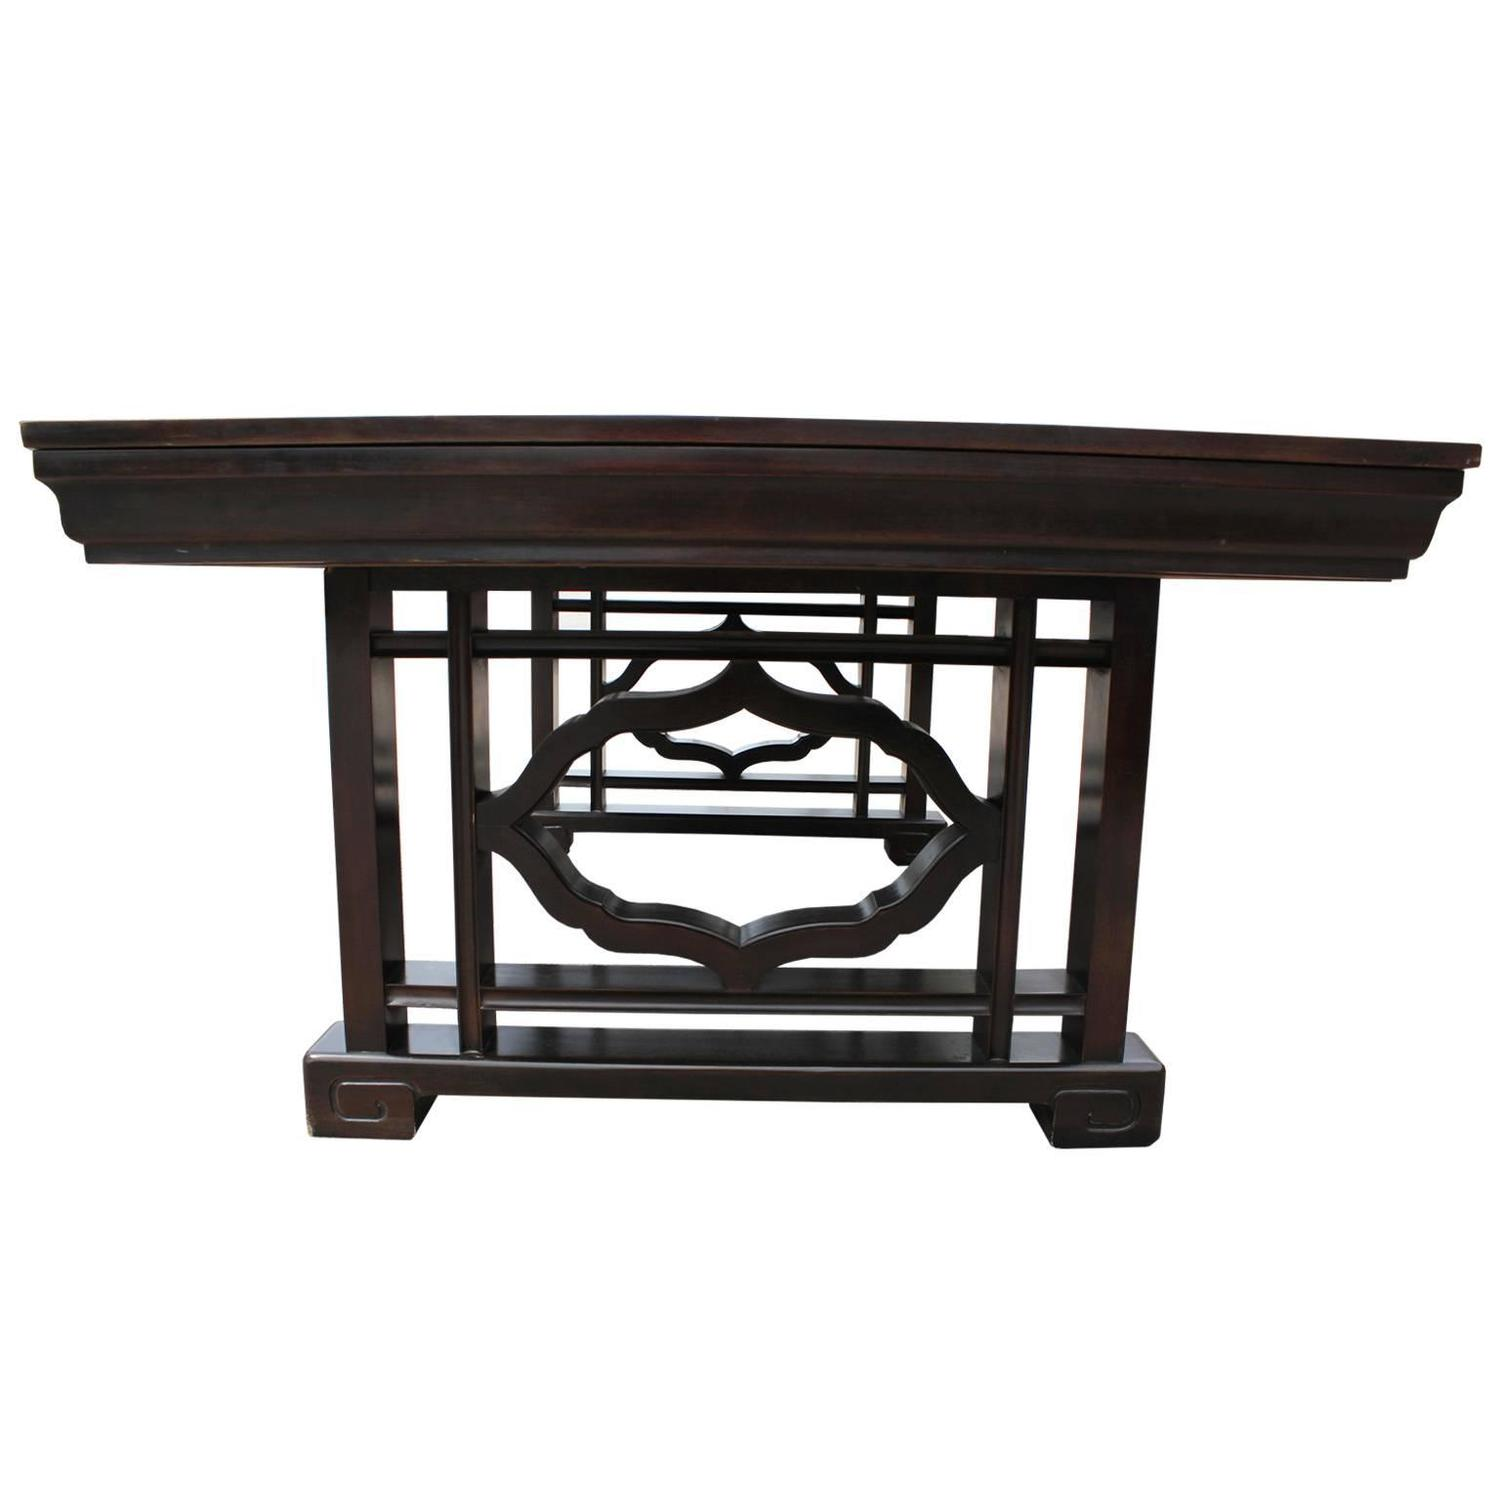 Elegant Widdicomb Dining Table With Service Drawers For